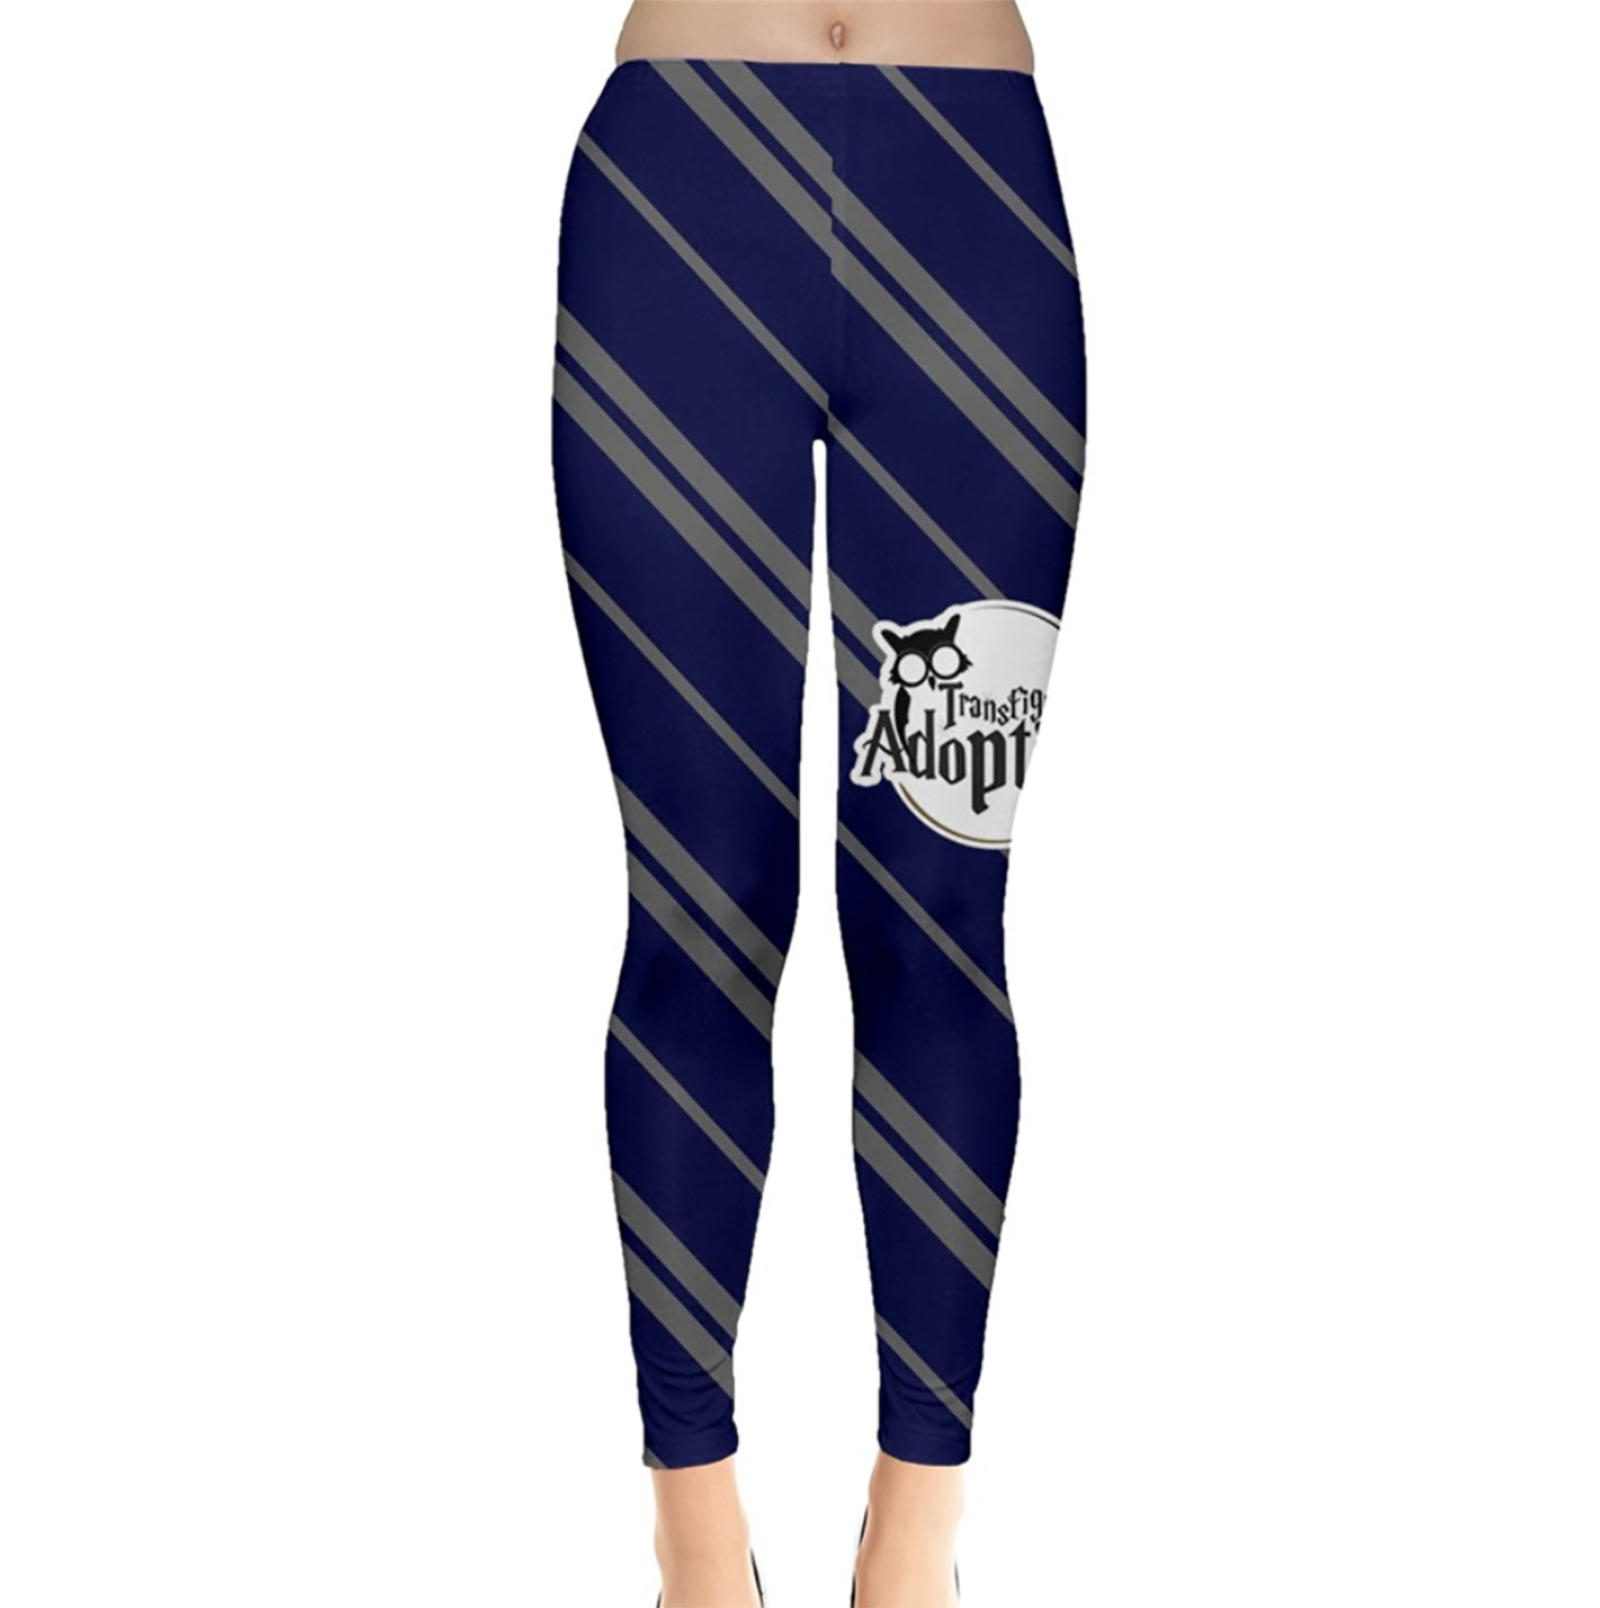 Blue & Gray Striped Leggings - Inspired by Ravenclaw